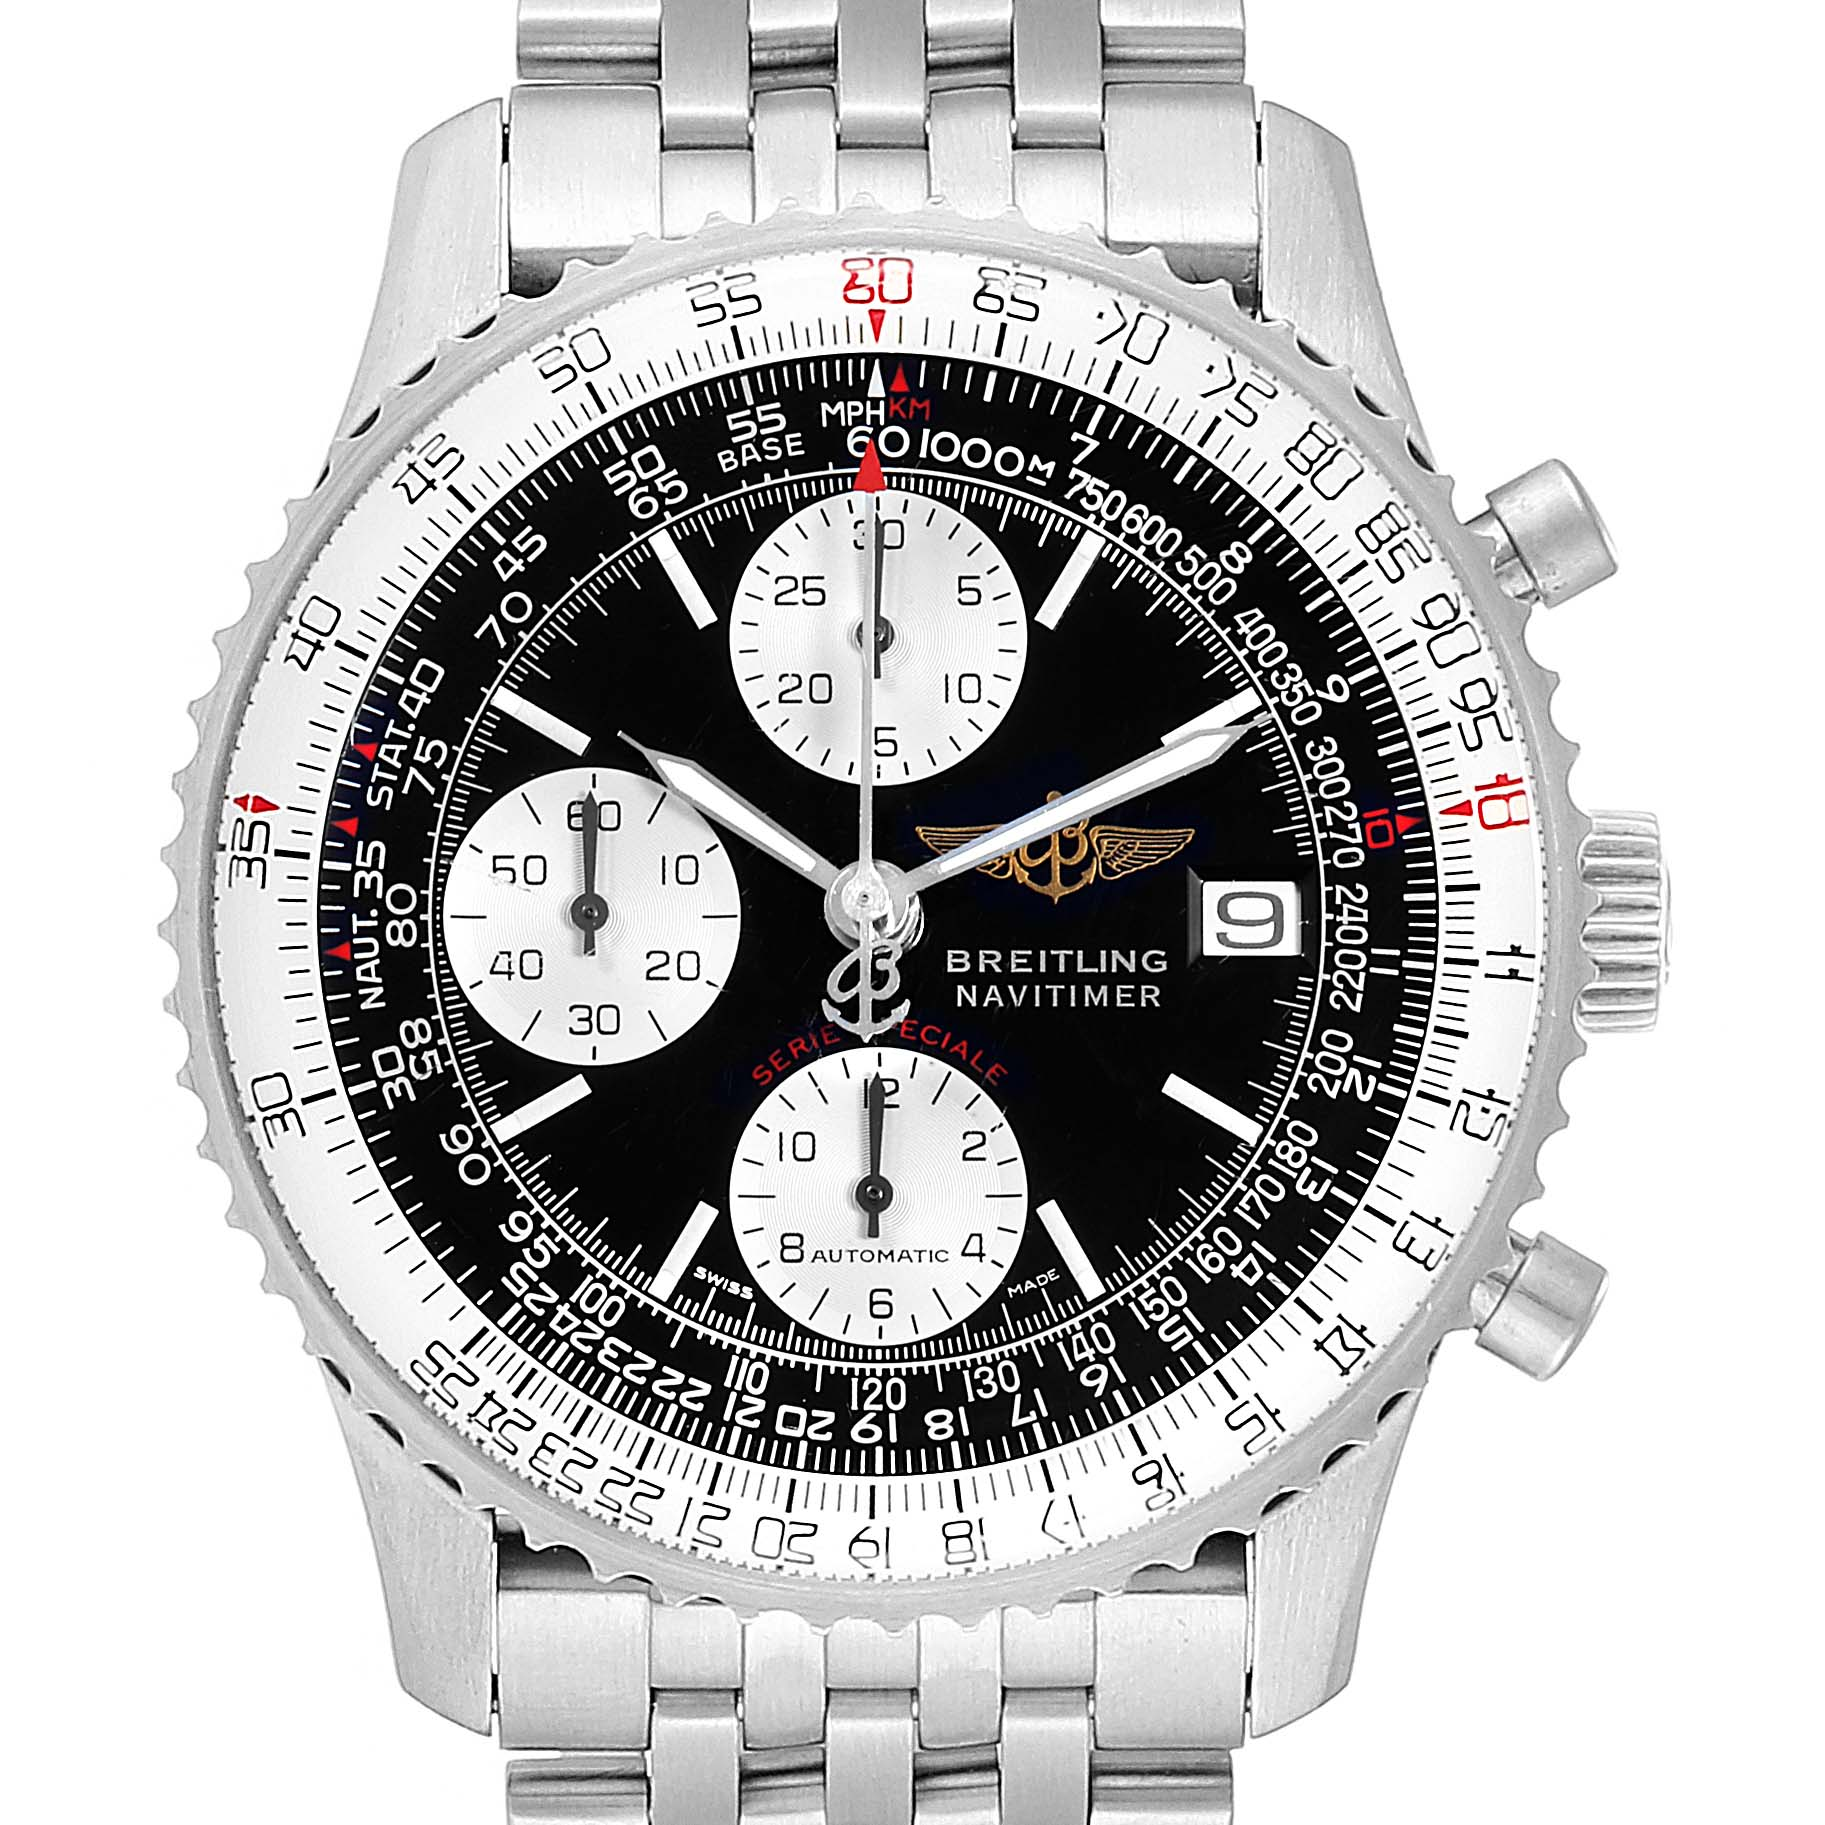 Breitling Navitimer Fighter Chronograph Steel Watch A13330 Box Papers